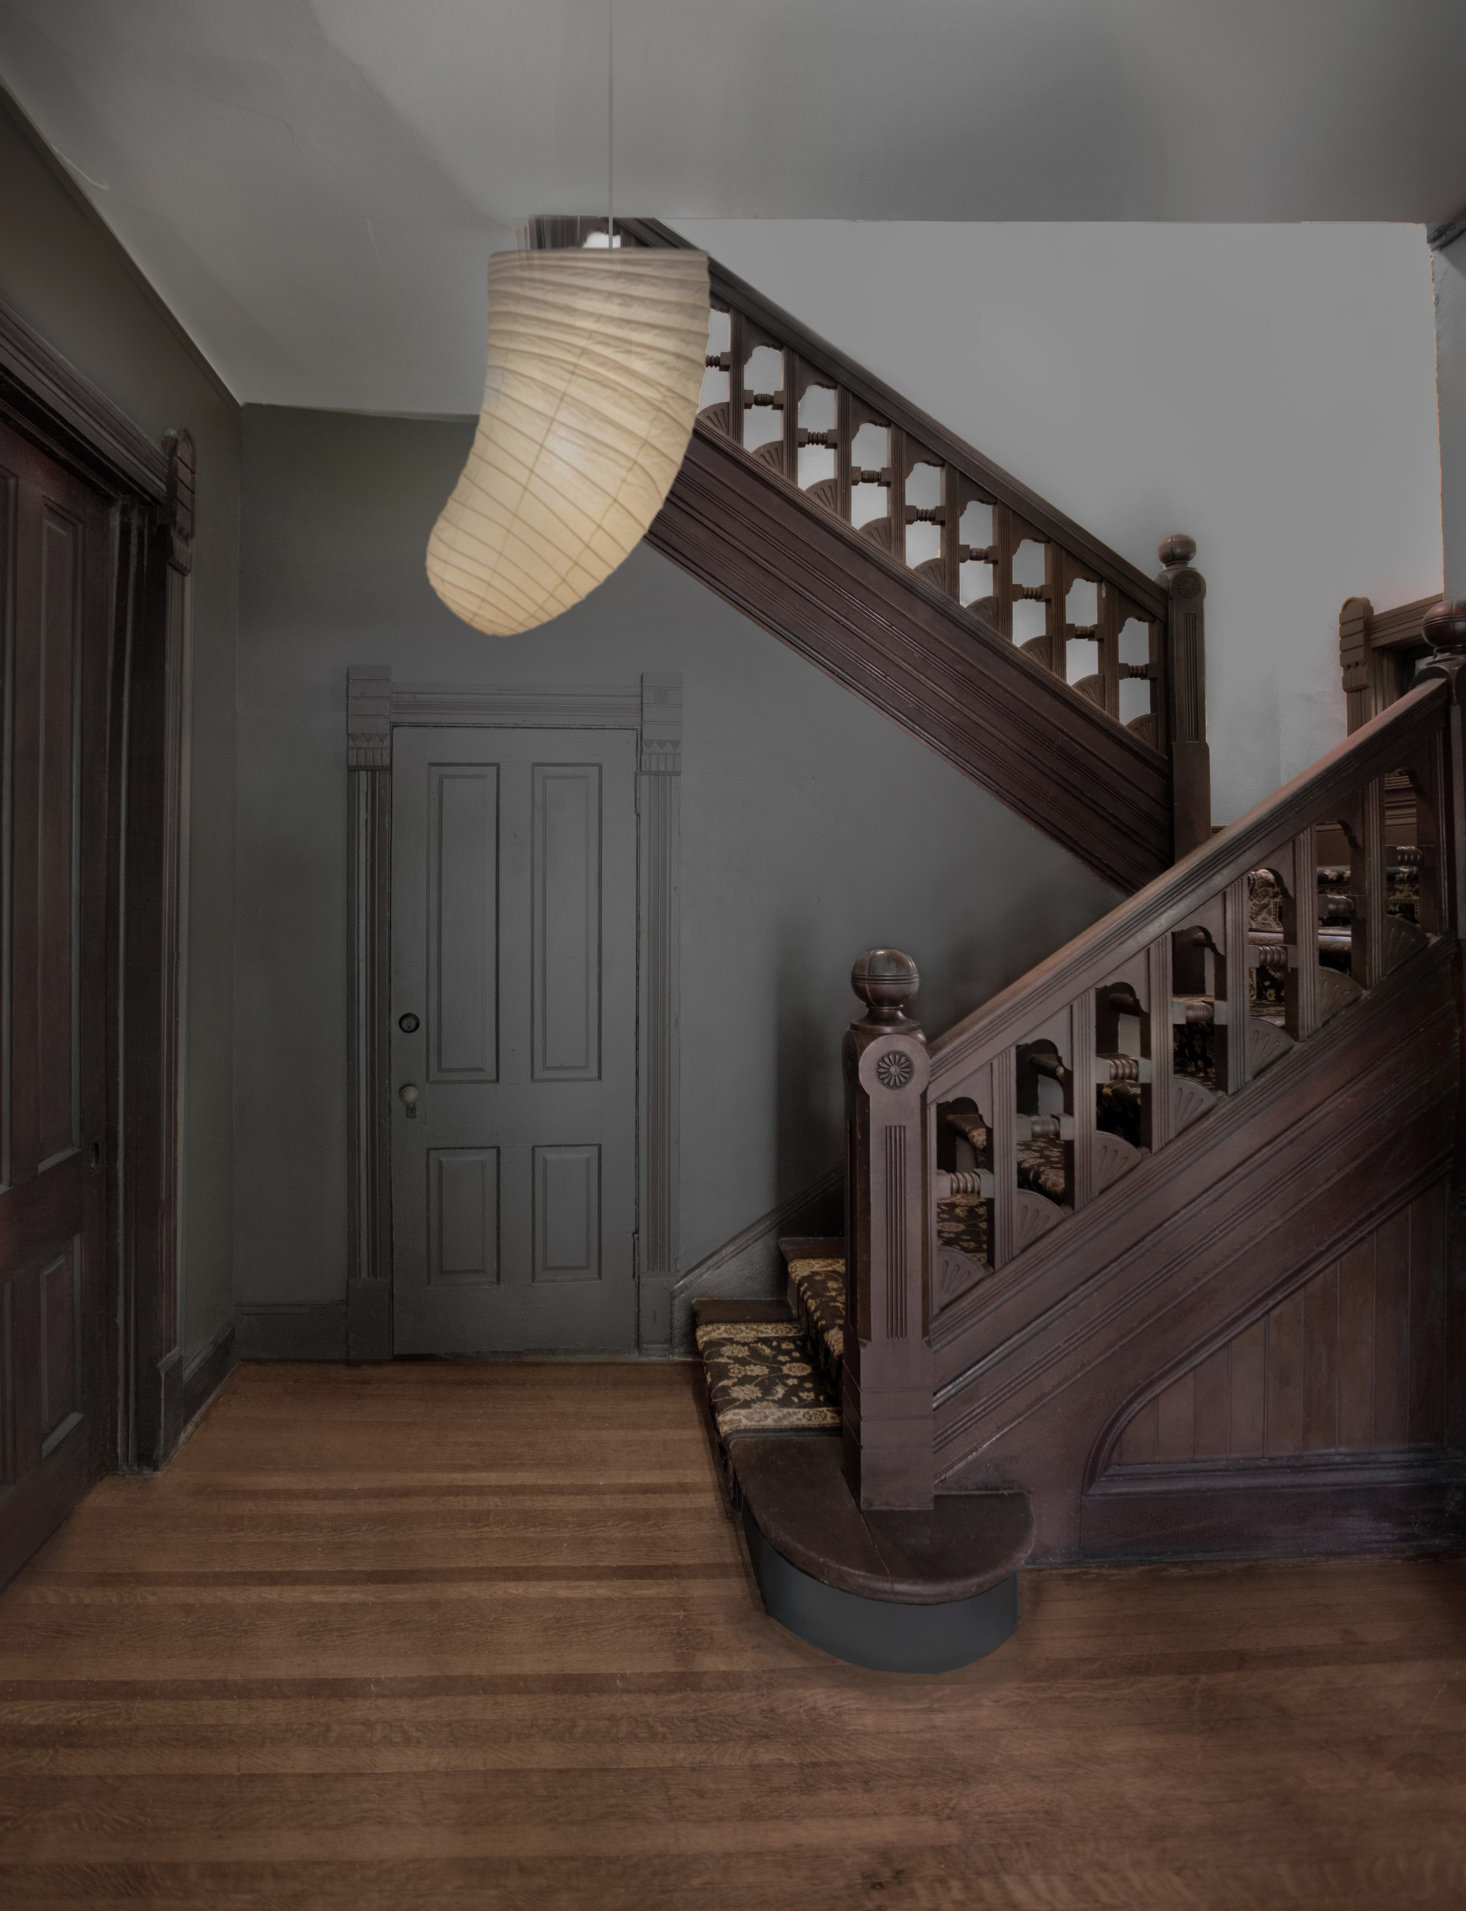 The interiors are defined by their dark, moody palette. &#8